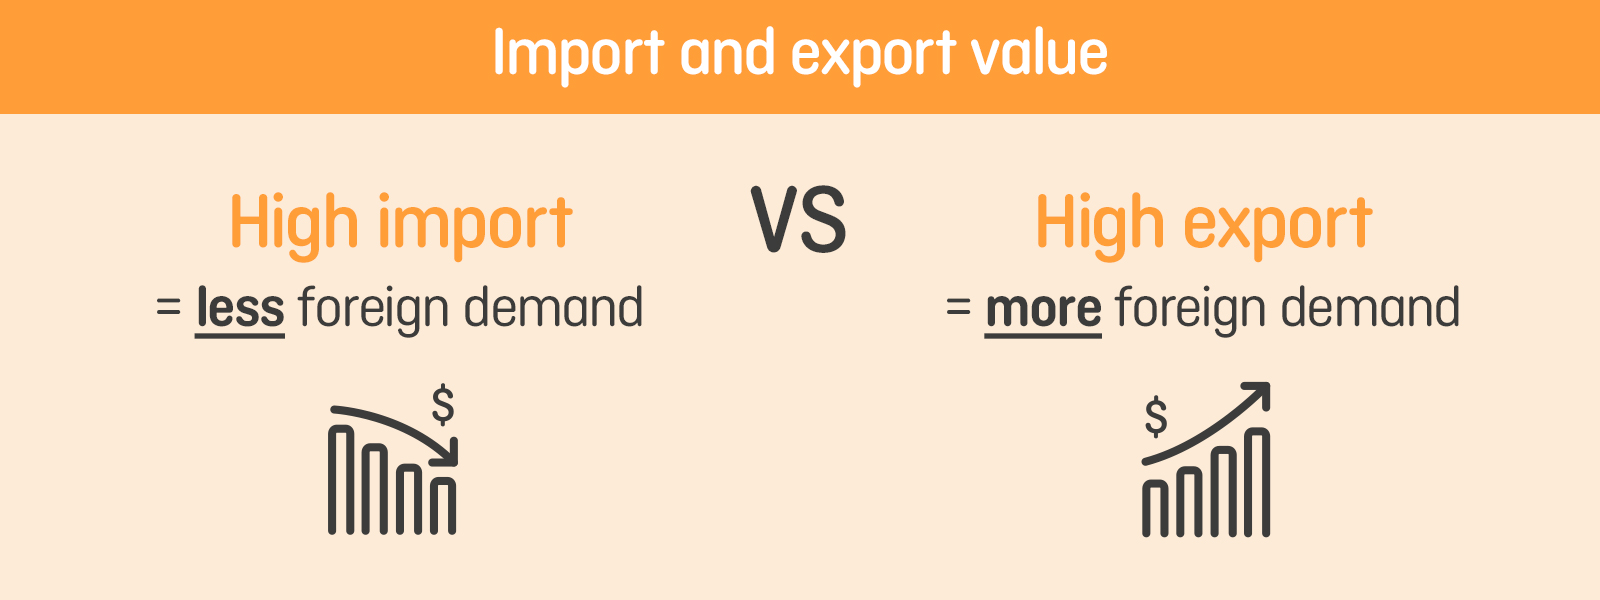 High imports vs high exports